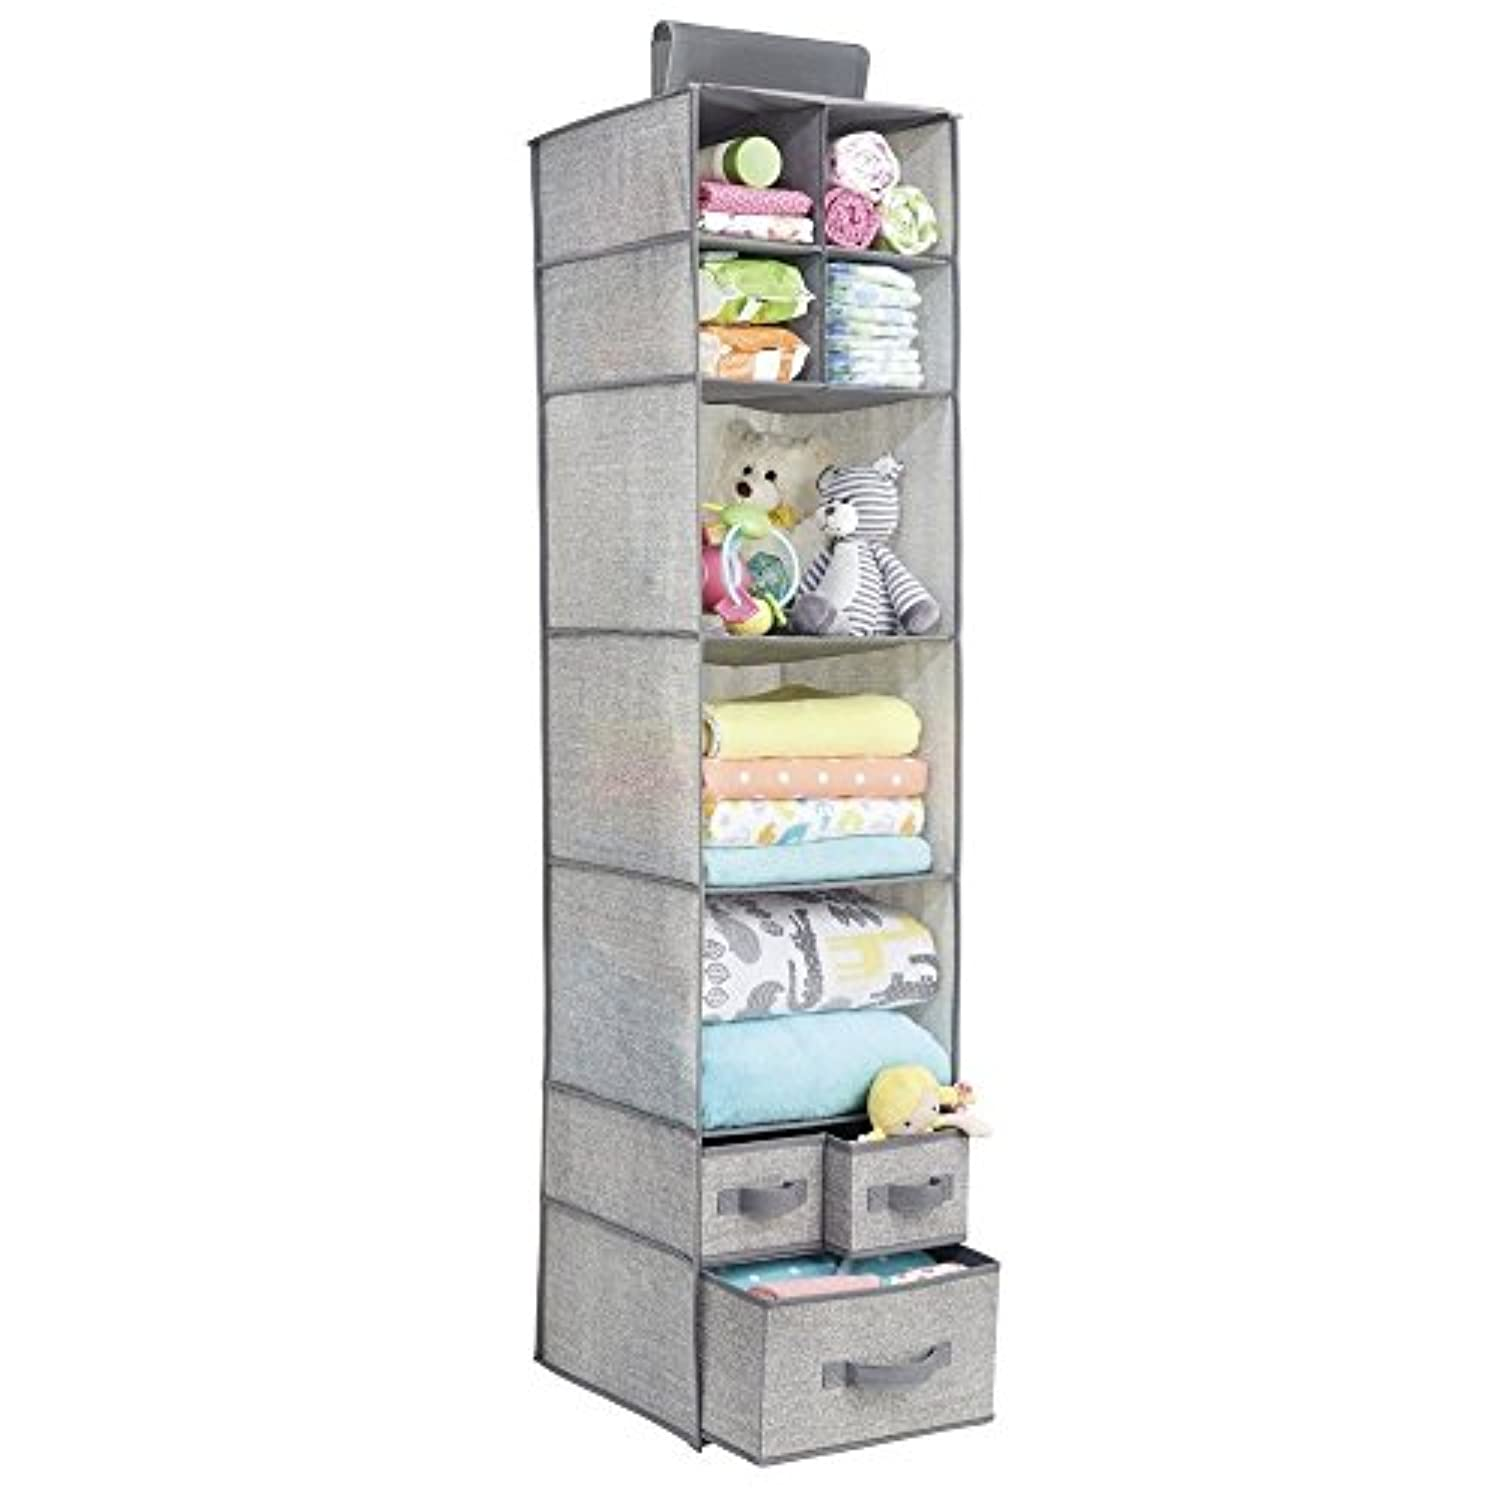 High Quality Aldo Fabric Hanging Closet Storage Organizer, for Clothing, Sweaters, Shoes, Accessories - 7 Shelves and 3 Drawers, Gray